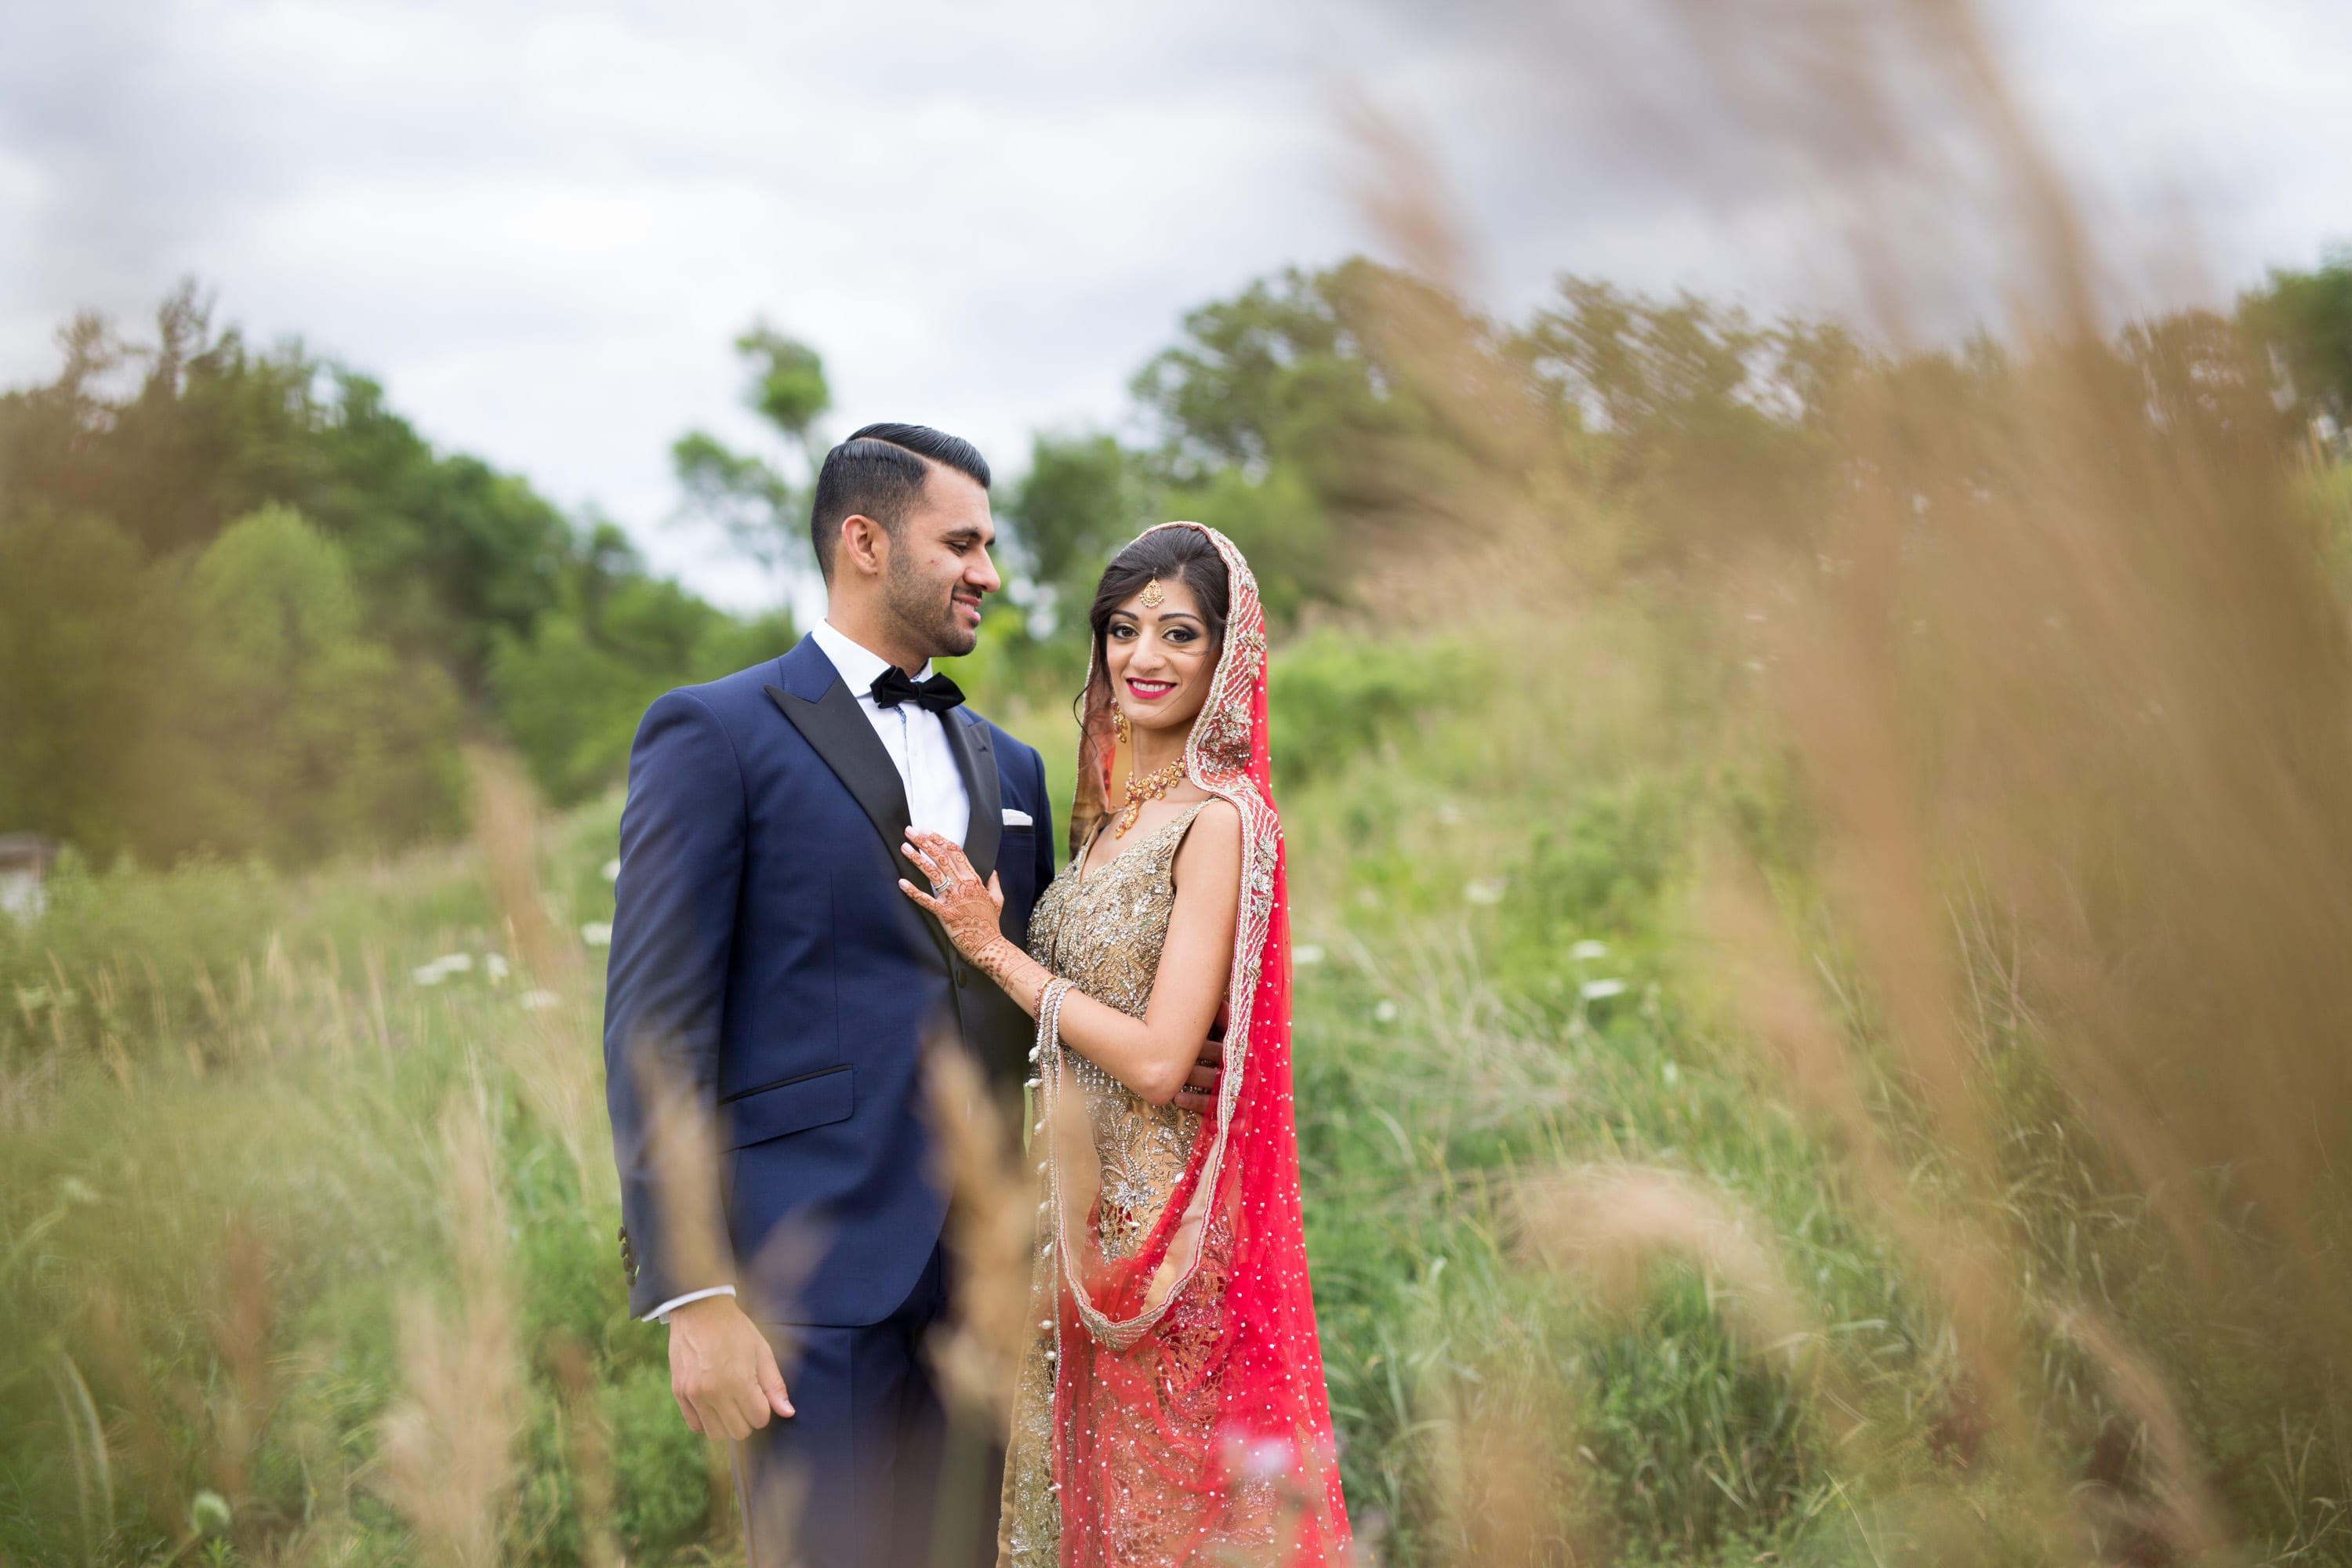 Wedding Photo Galleries Toronto Photography